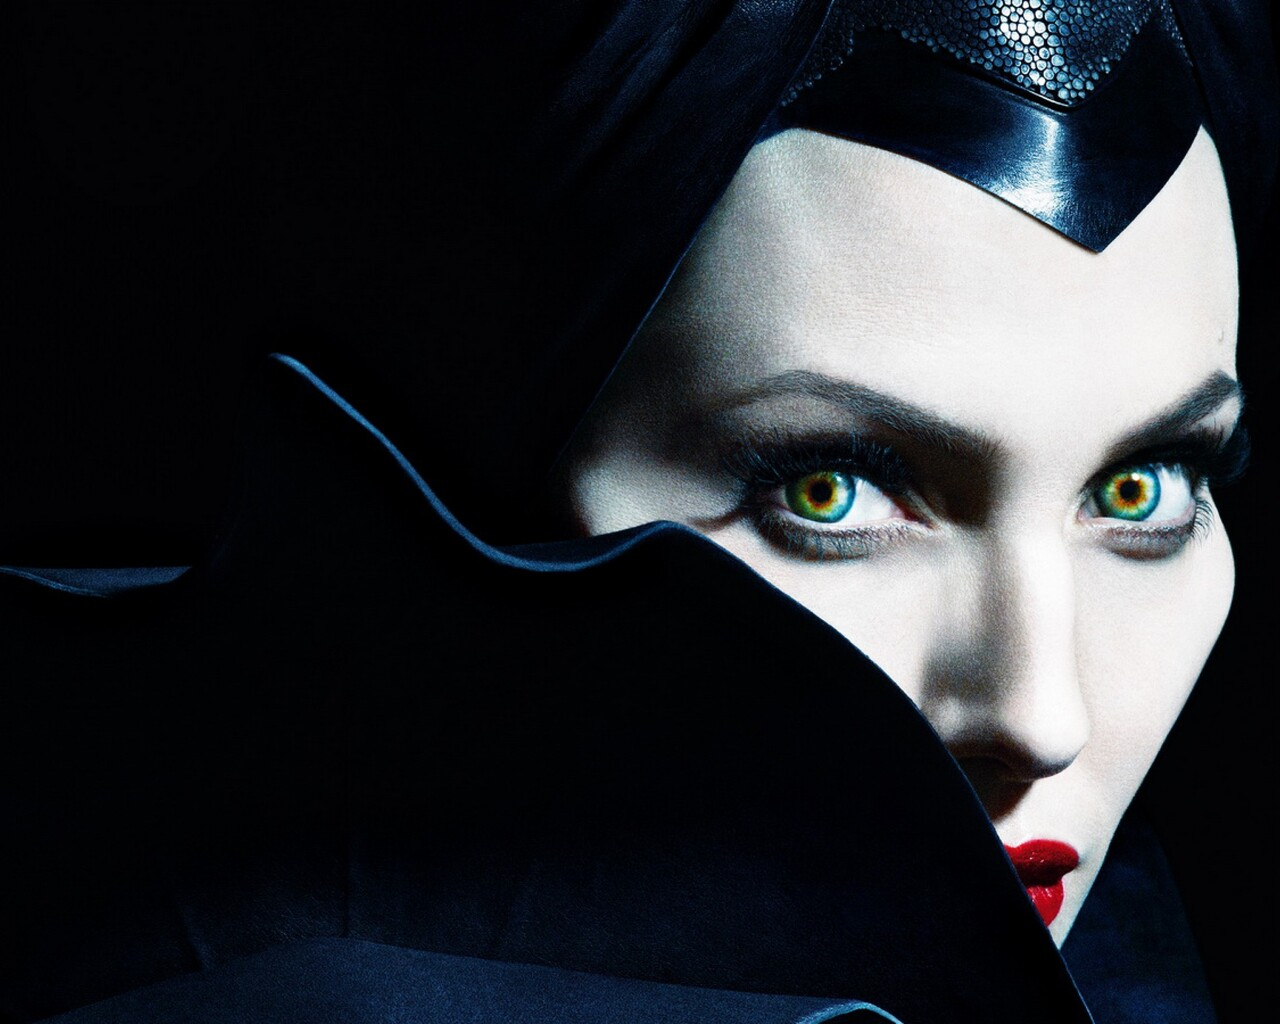 angelina-jolie-in-maleficent.jpg